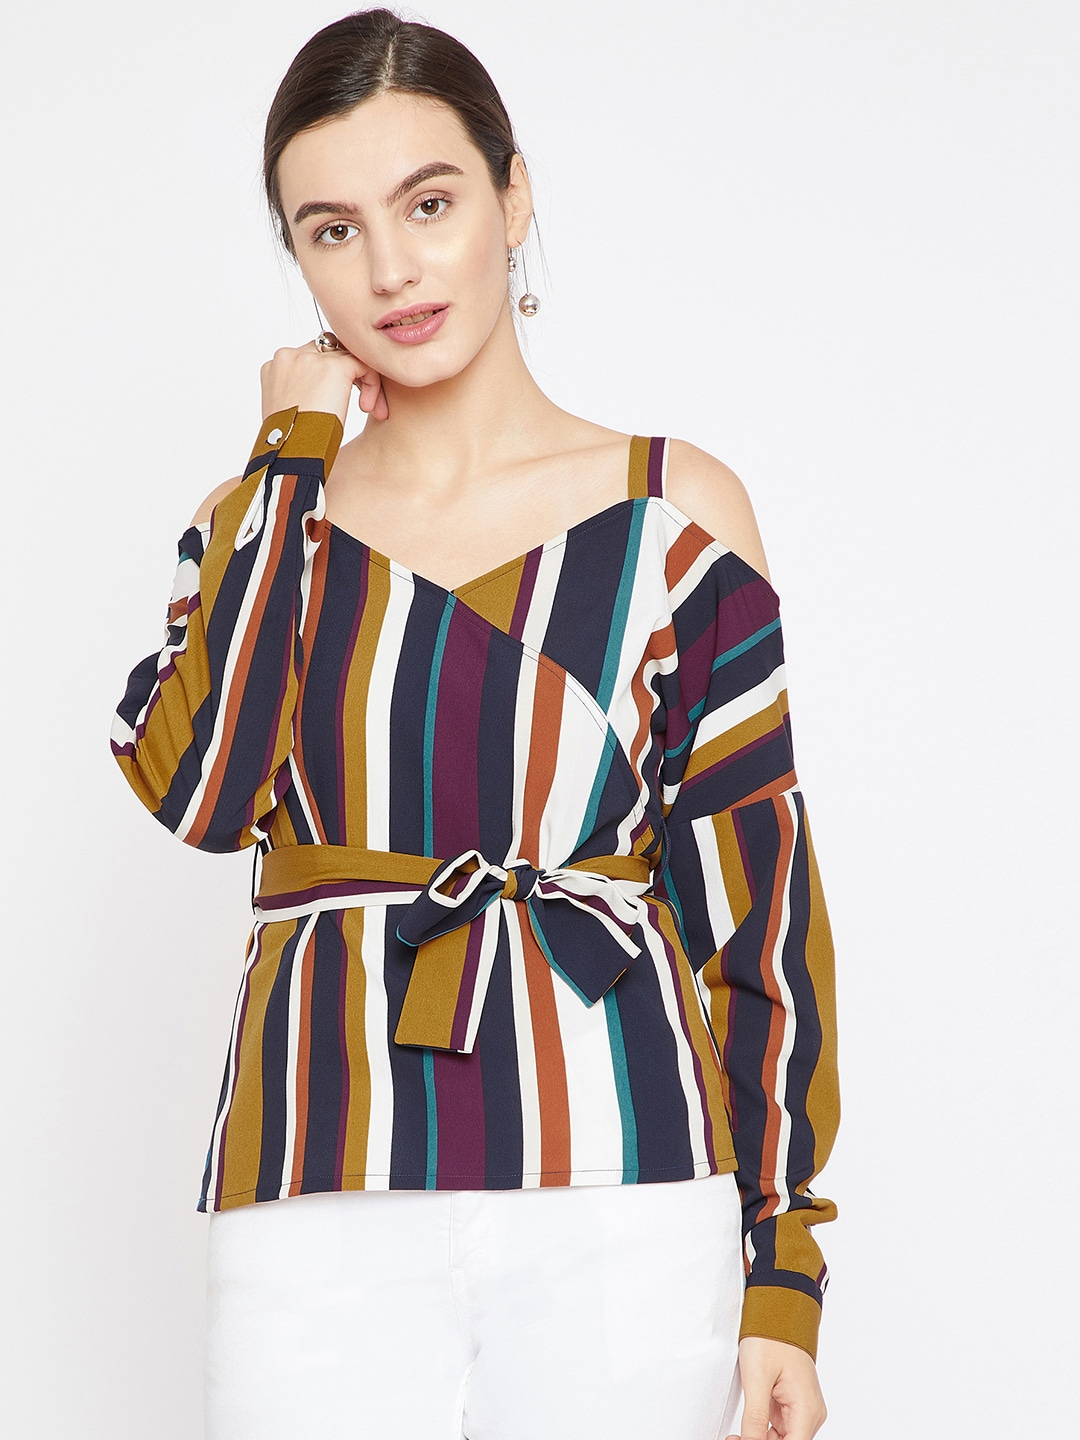 eb140e36c0a Women Striped Tops - Buy Women Striped Tops online in India